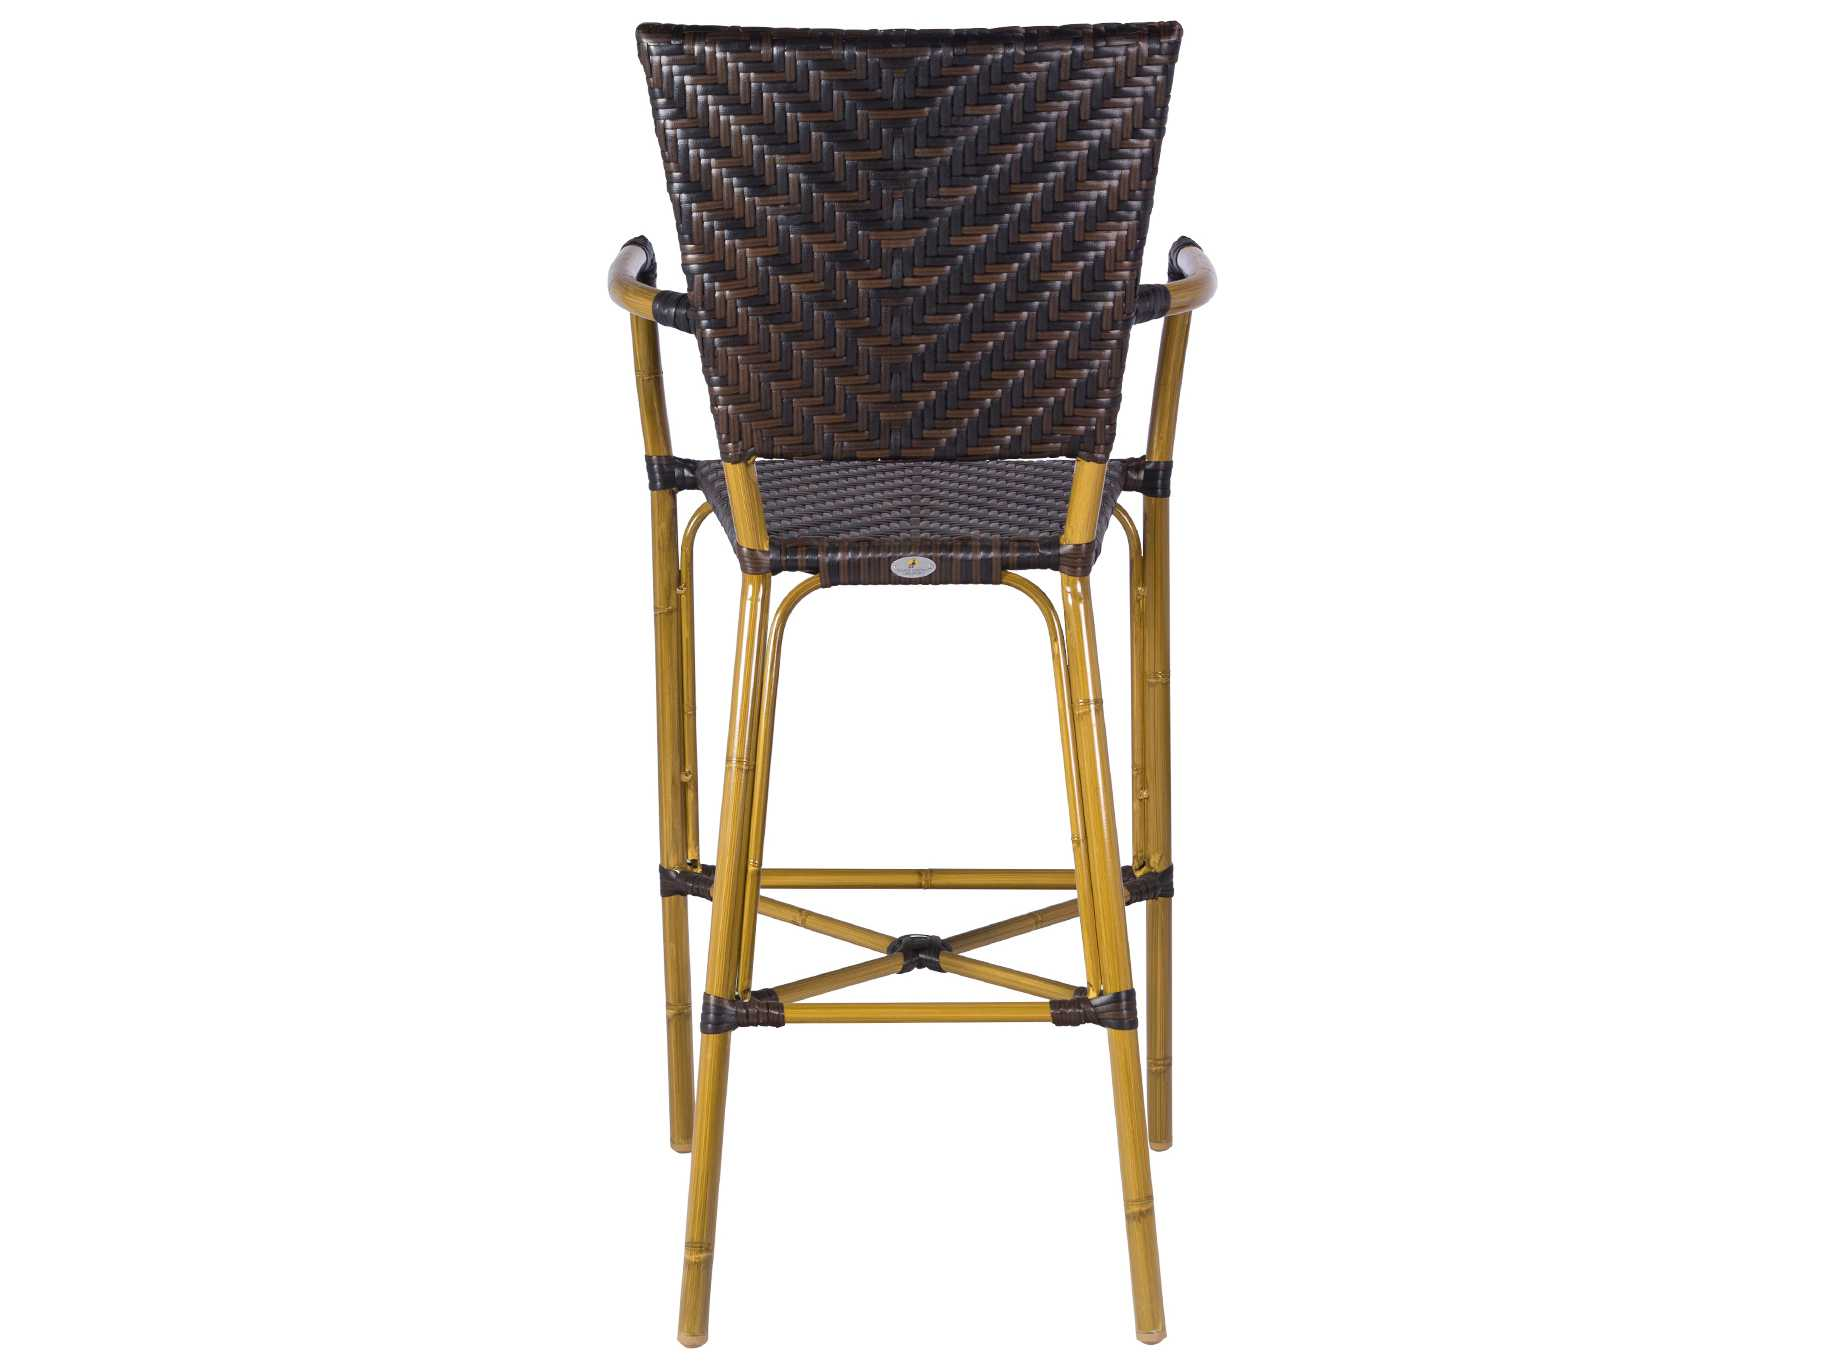 Source Outdoor Furniture Capri Wicker Bar Arm Chair SC  : SCSC22021733zm from www.patioliving.com size 1825 x 1369 jpeg 80kB